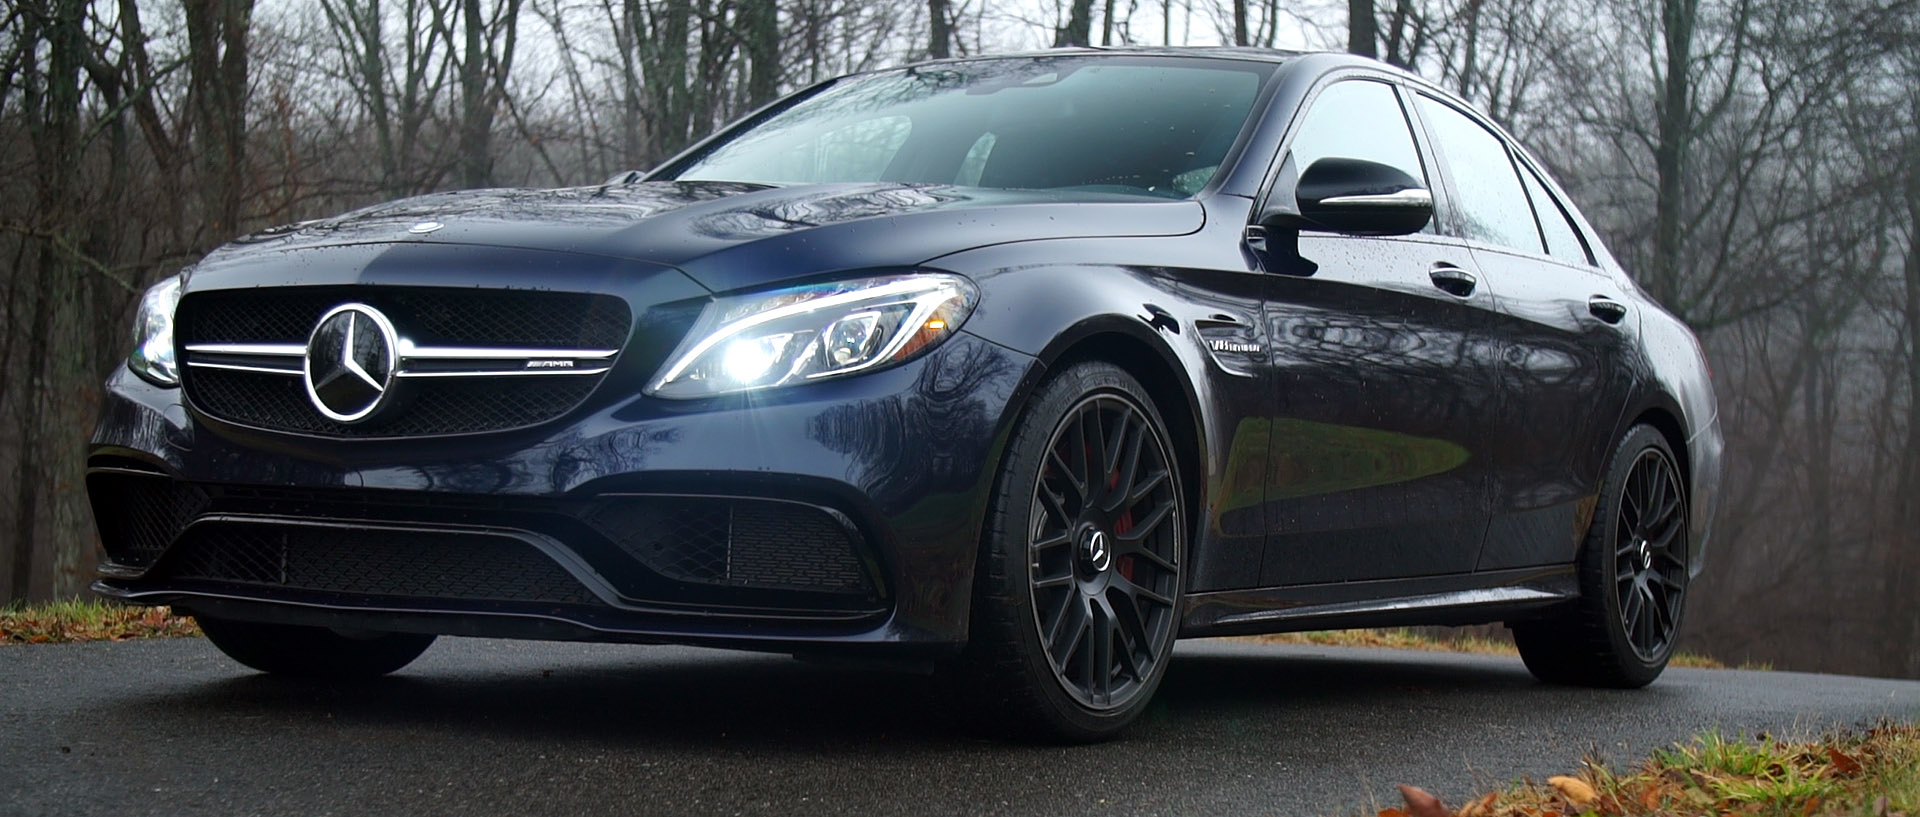 2016 mercedes benz amg c63 s impresses consumer reports. Black Bedroom Furniture Sets. Home Design Ideas